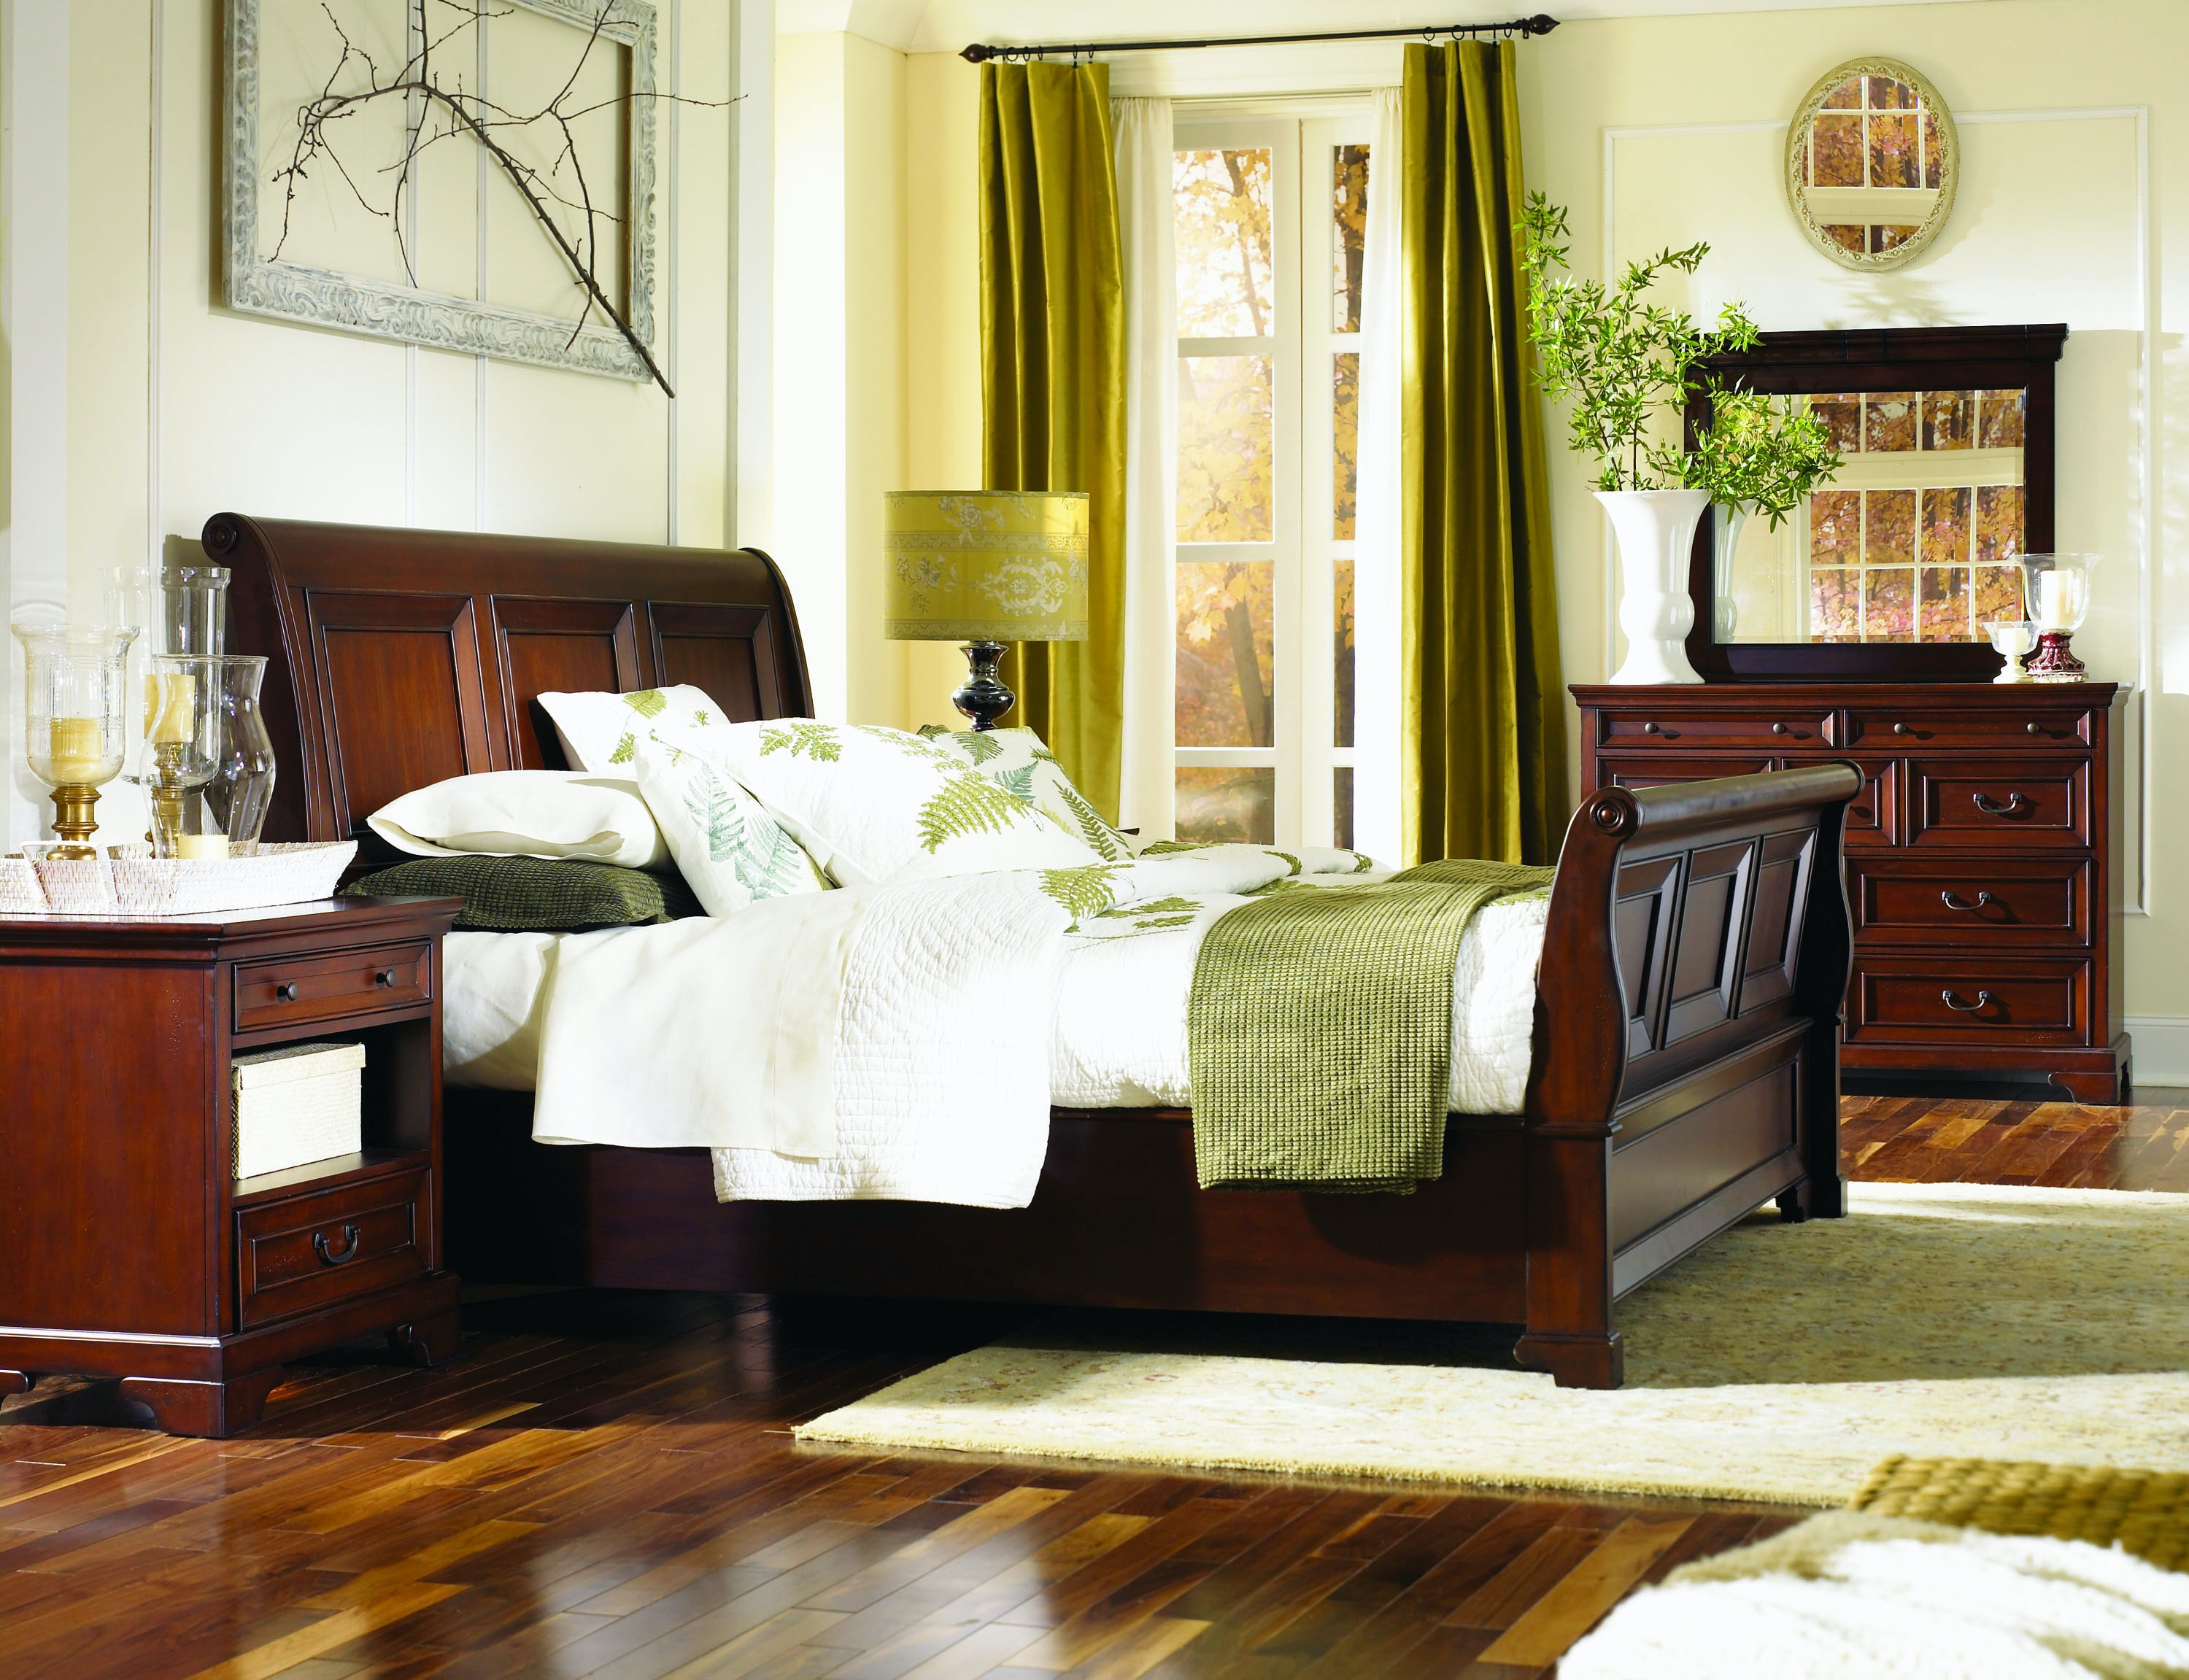 Homeworks Richmond Queen Sleigh Bed Headboard HWI40400 From Walter E.  Smithe Furniture + Design